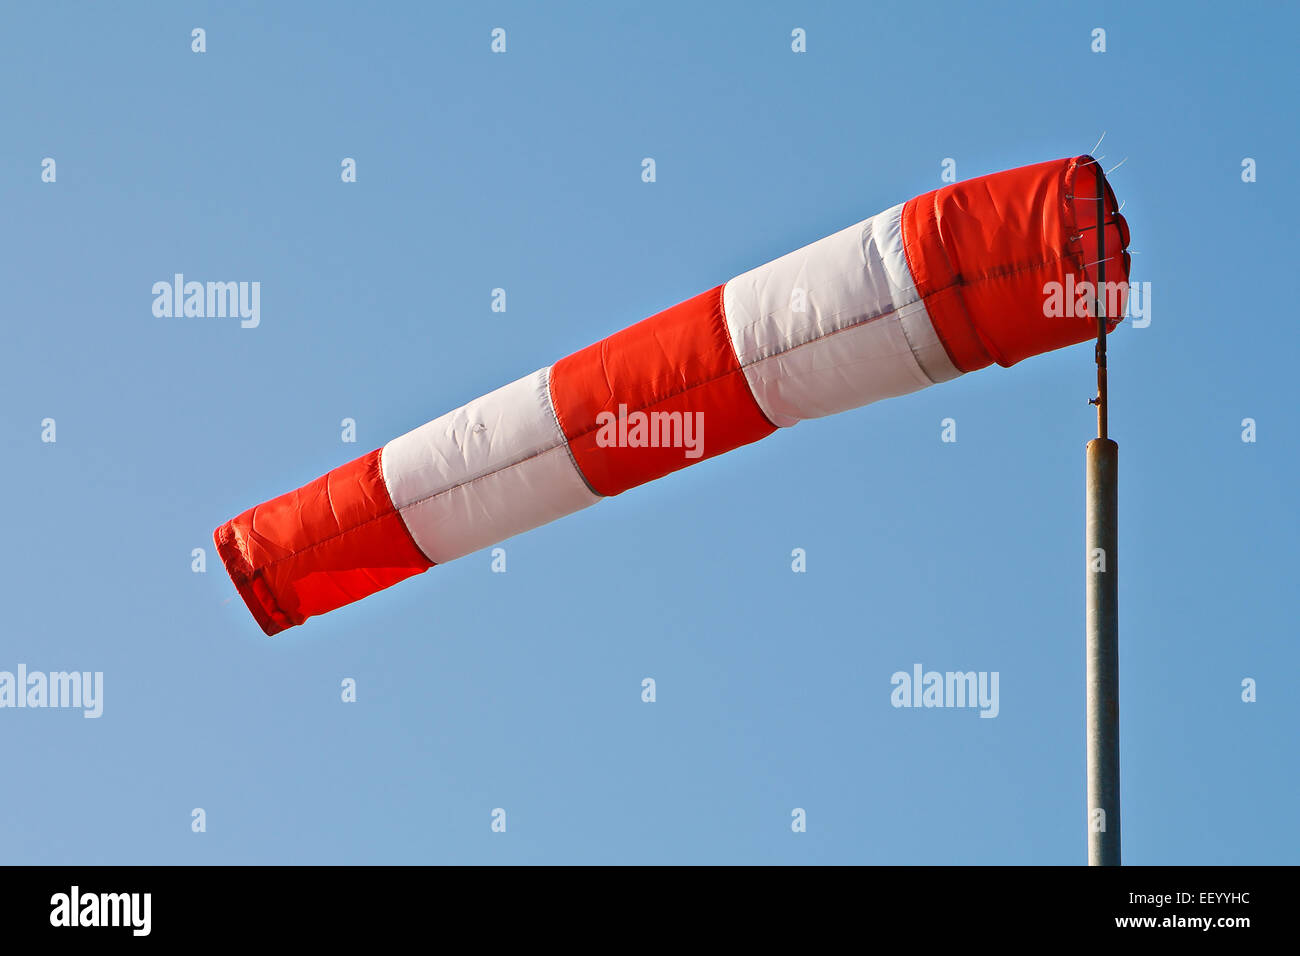 A wind sock. - Stock Image